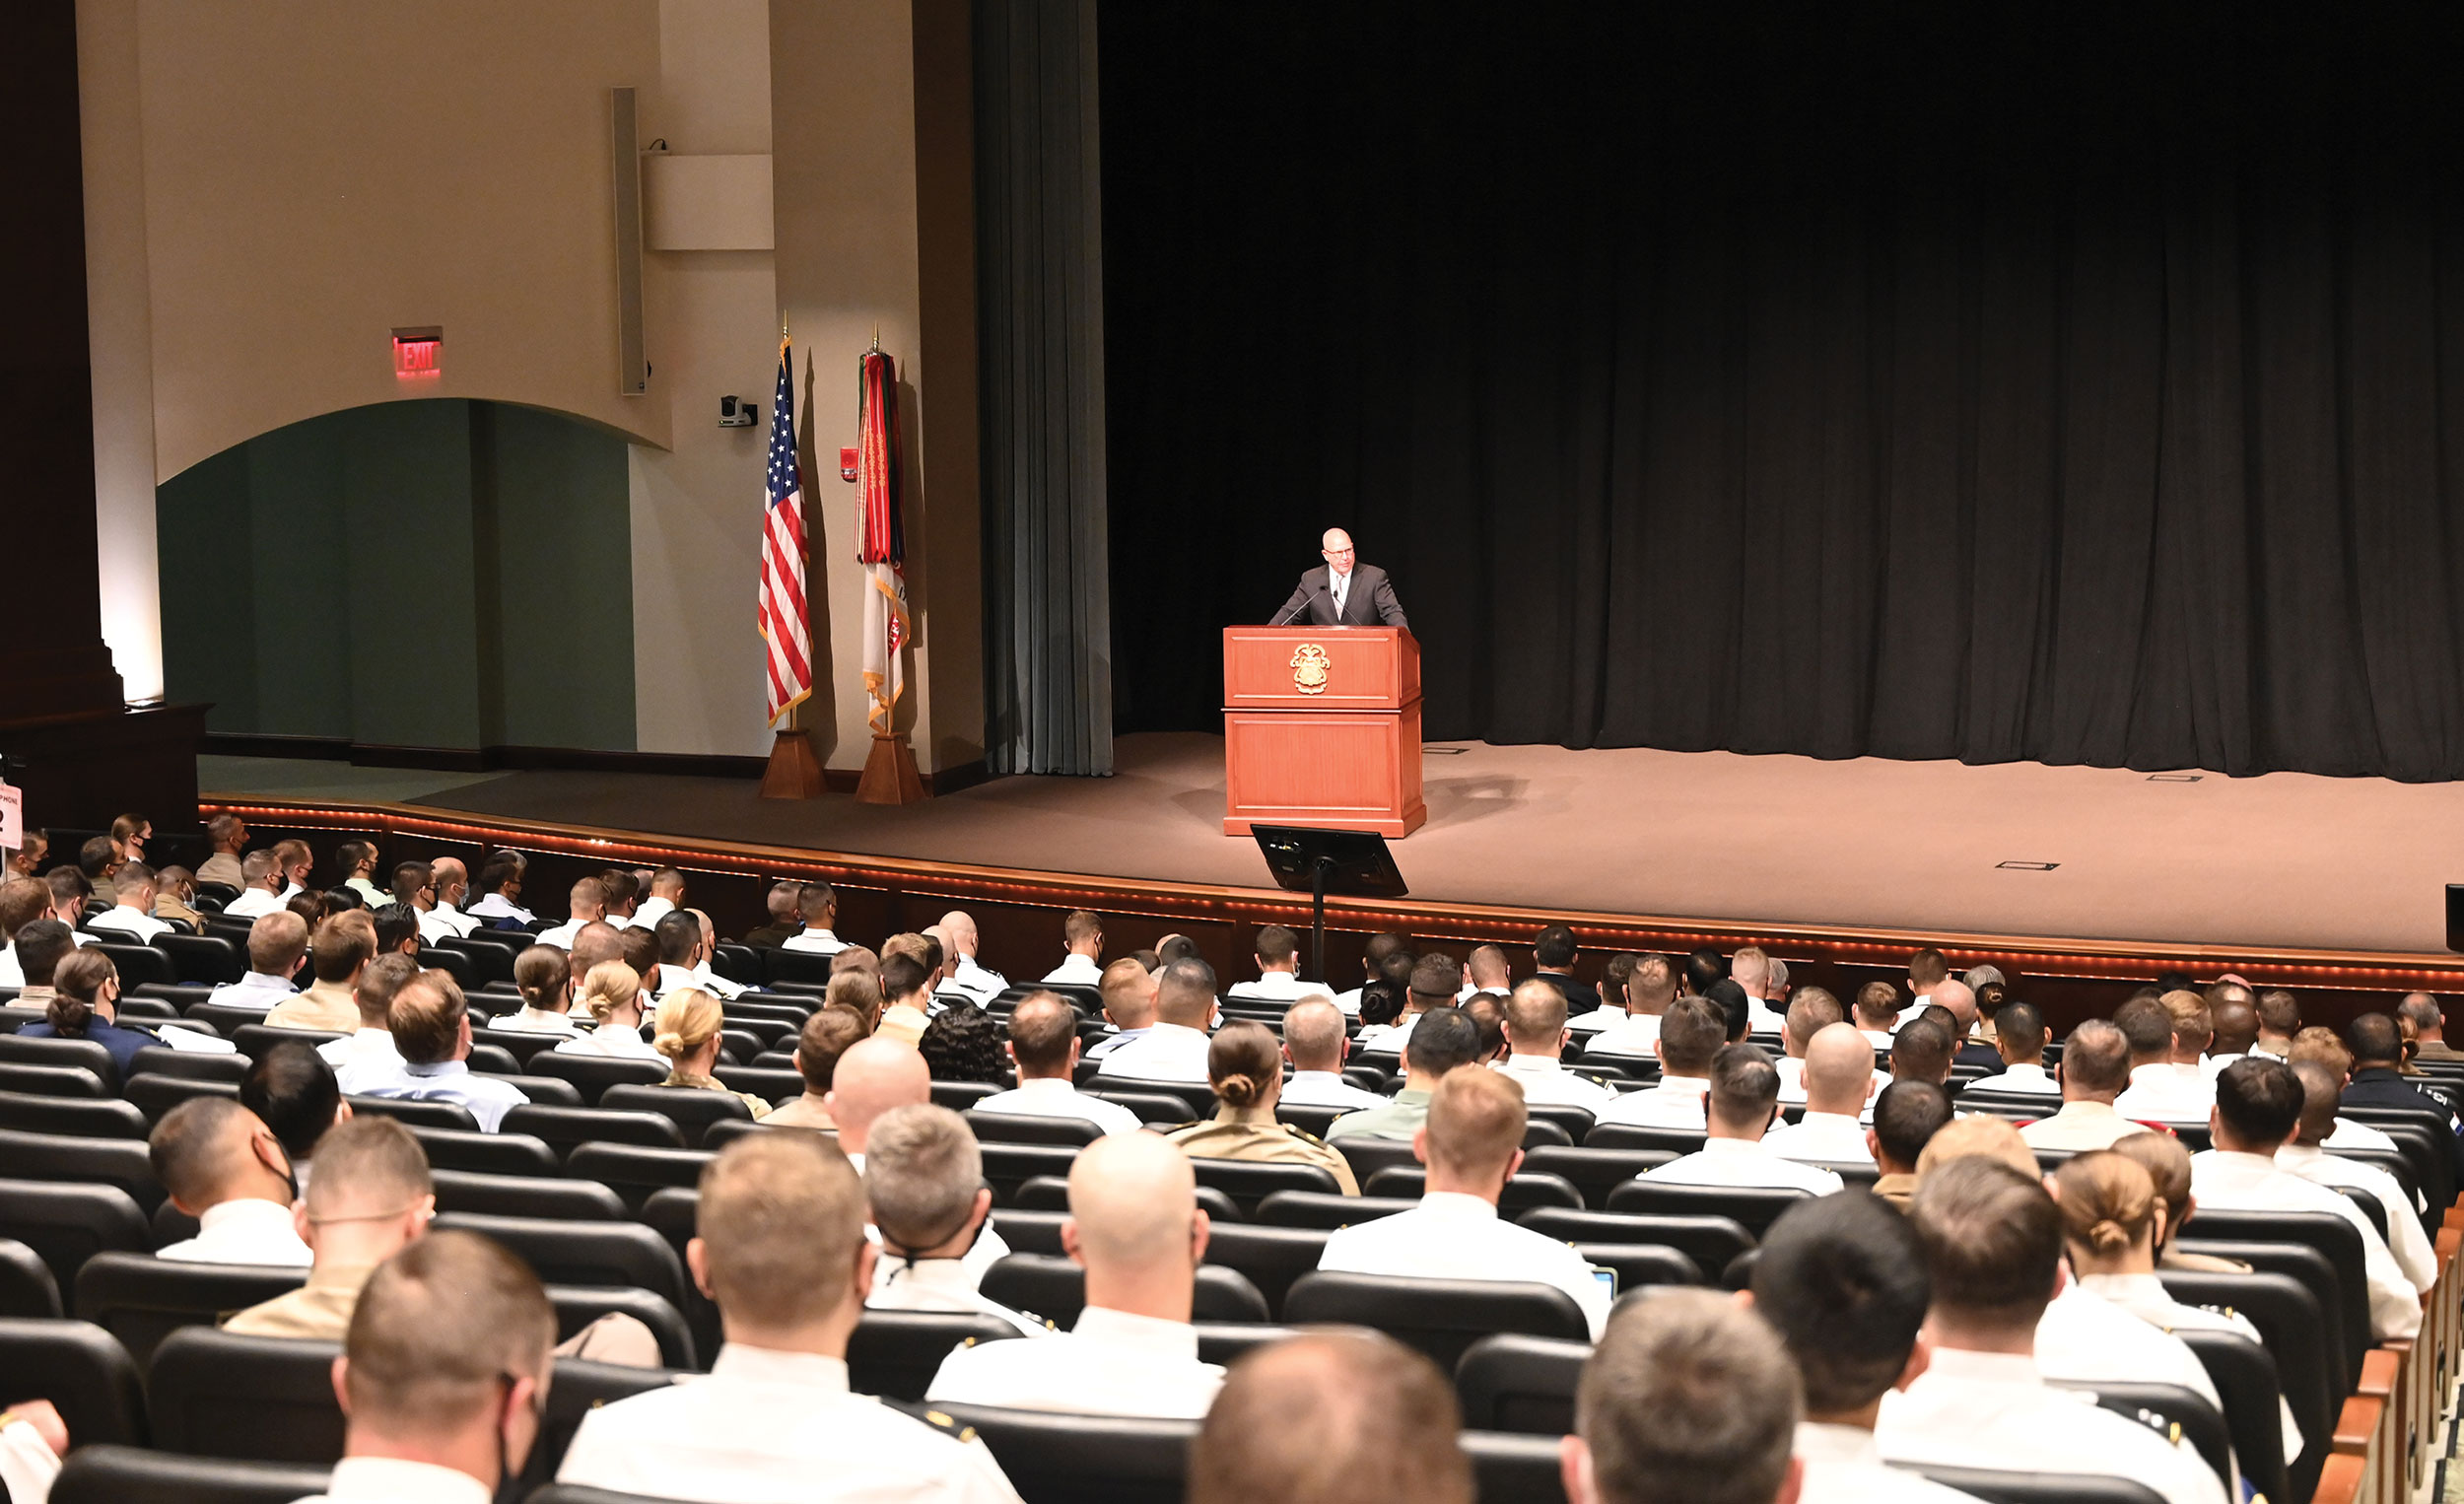 Lt. Gen. (Ret.) H.R. McMaster, the 26th assistant to the President for National Security Affairs, delivers his remarks during the annual Colin L. Powell Lecture for students of the Command and General Staff Officers Course Class of 2022 in Eisenhower Hall in Fort Leavenworth's Lewis and Clark Center Sept. 8, 2021.